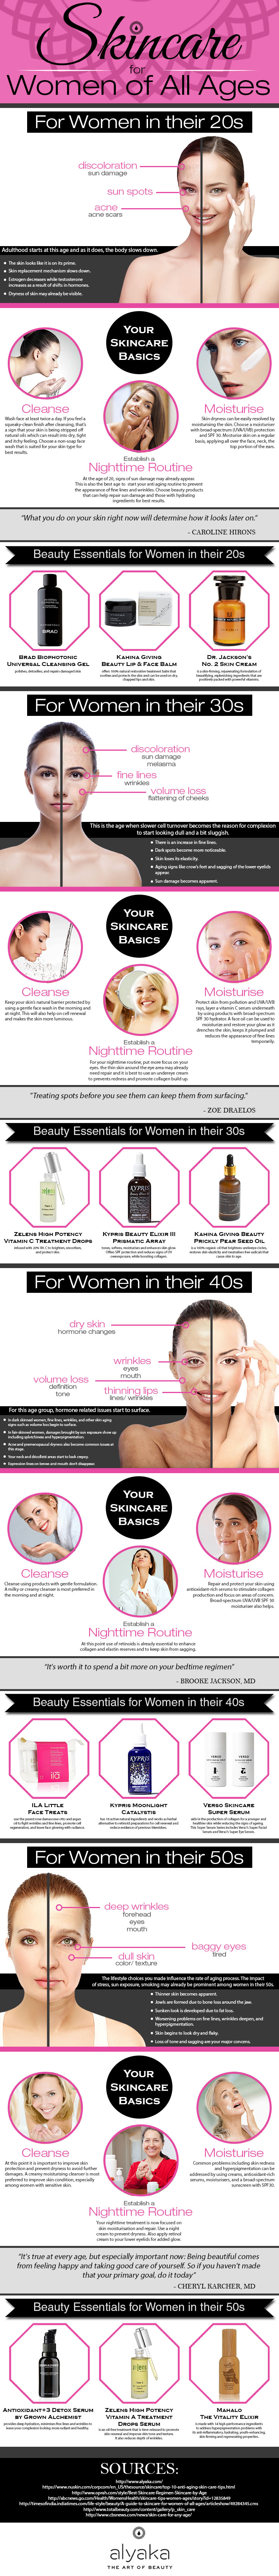 Skincare for women of all ages infographic